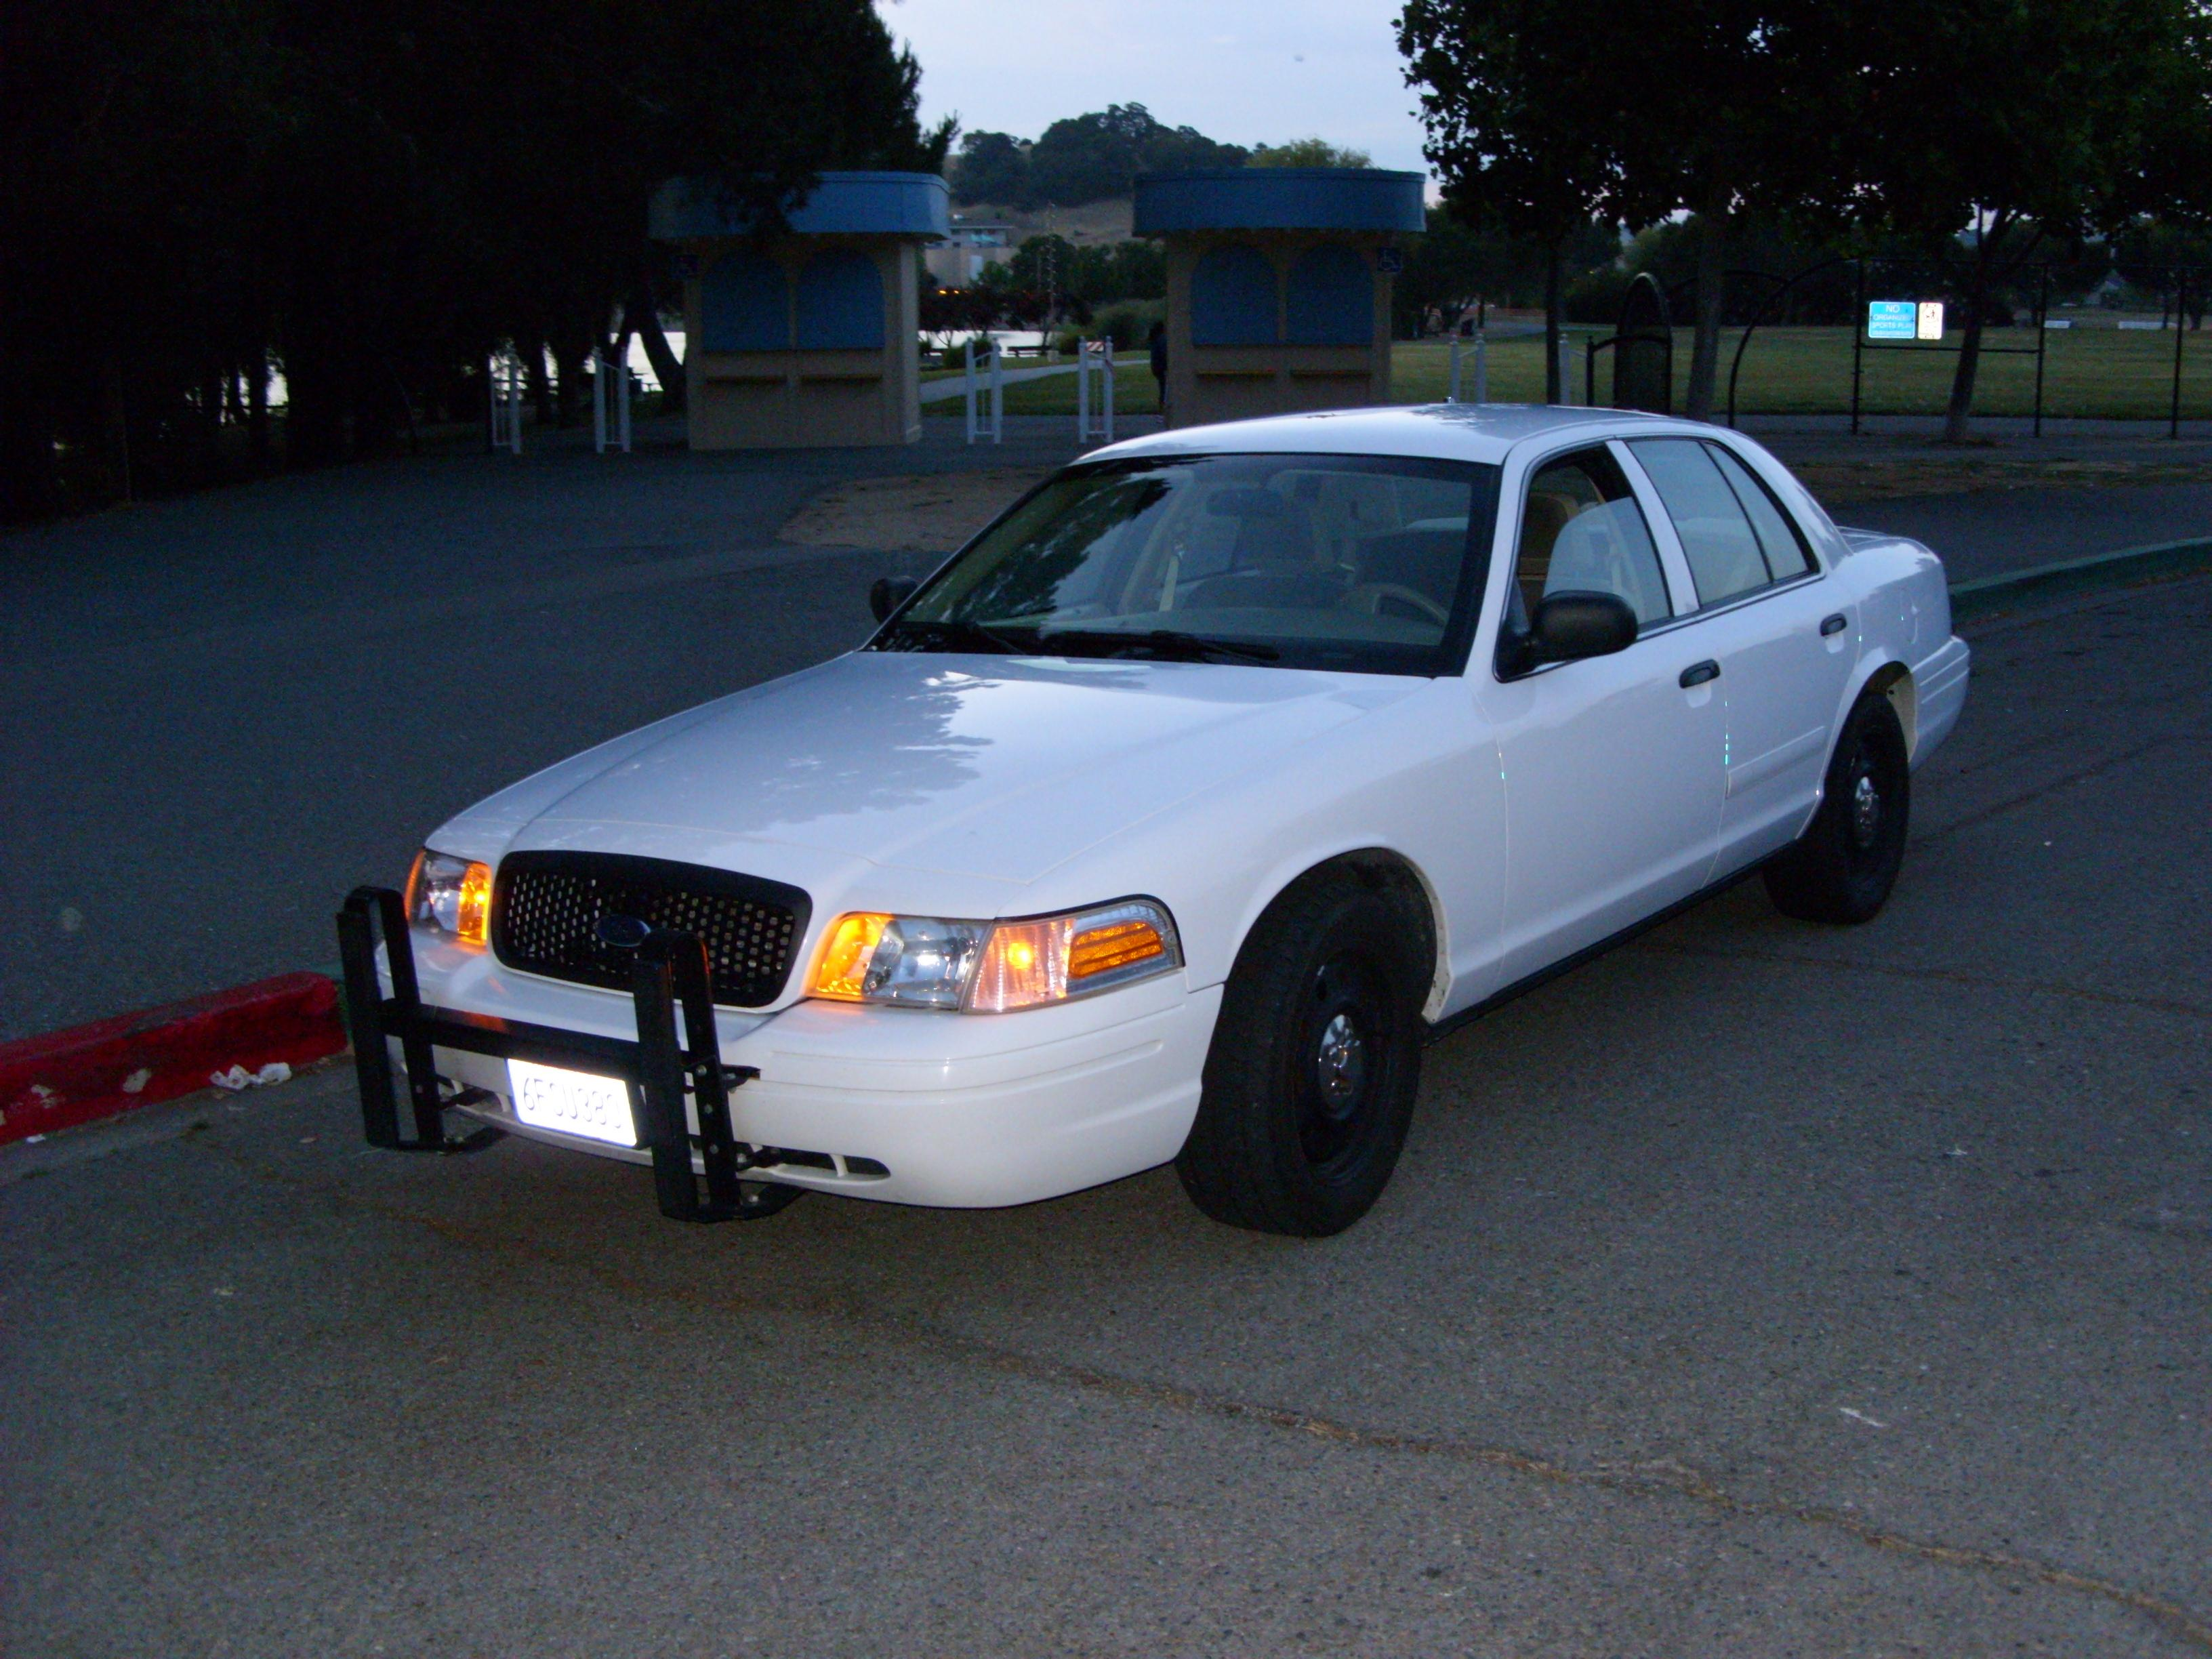 mn007 2006 Ford Crown Victoria Specs, Photos, Modification Info at ...